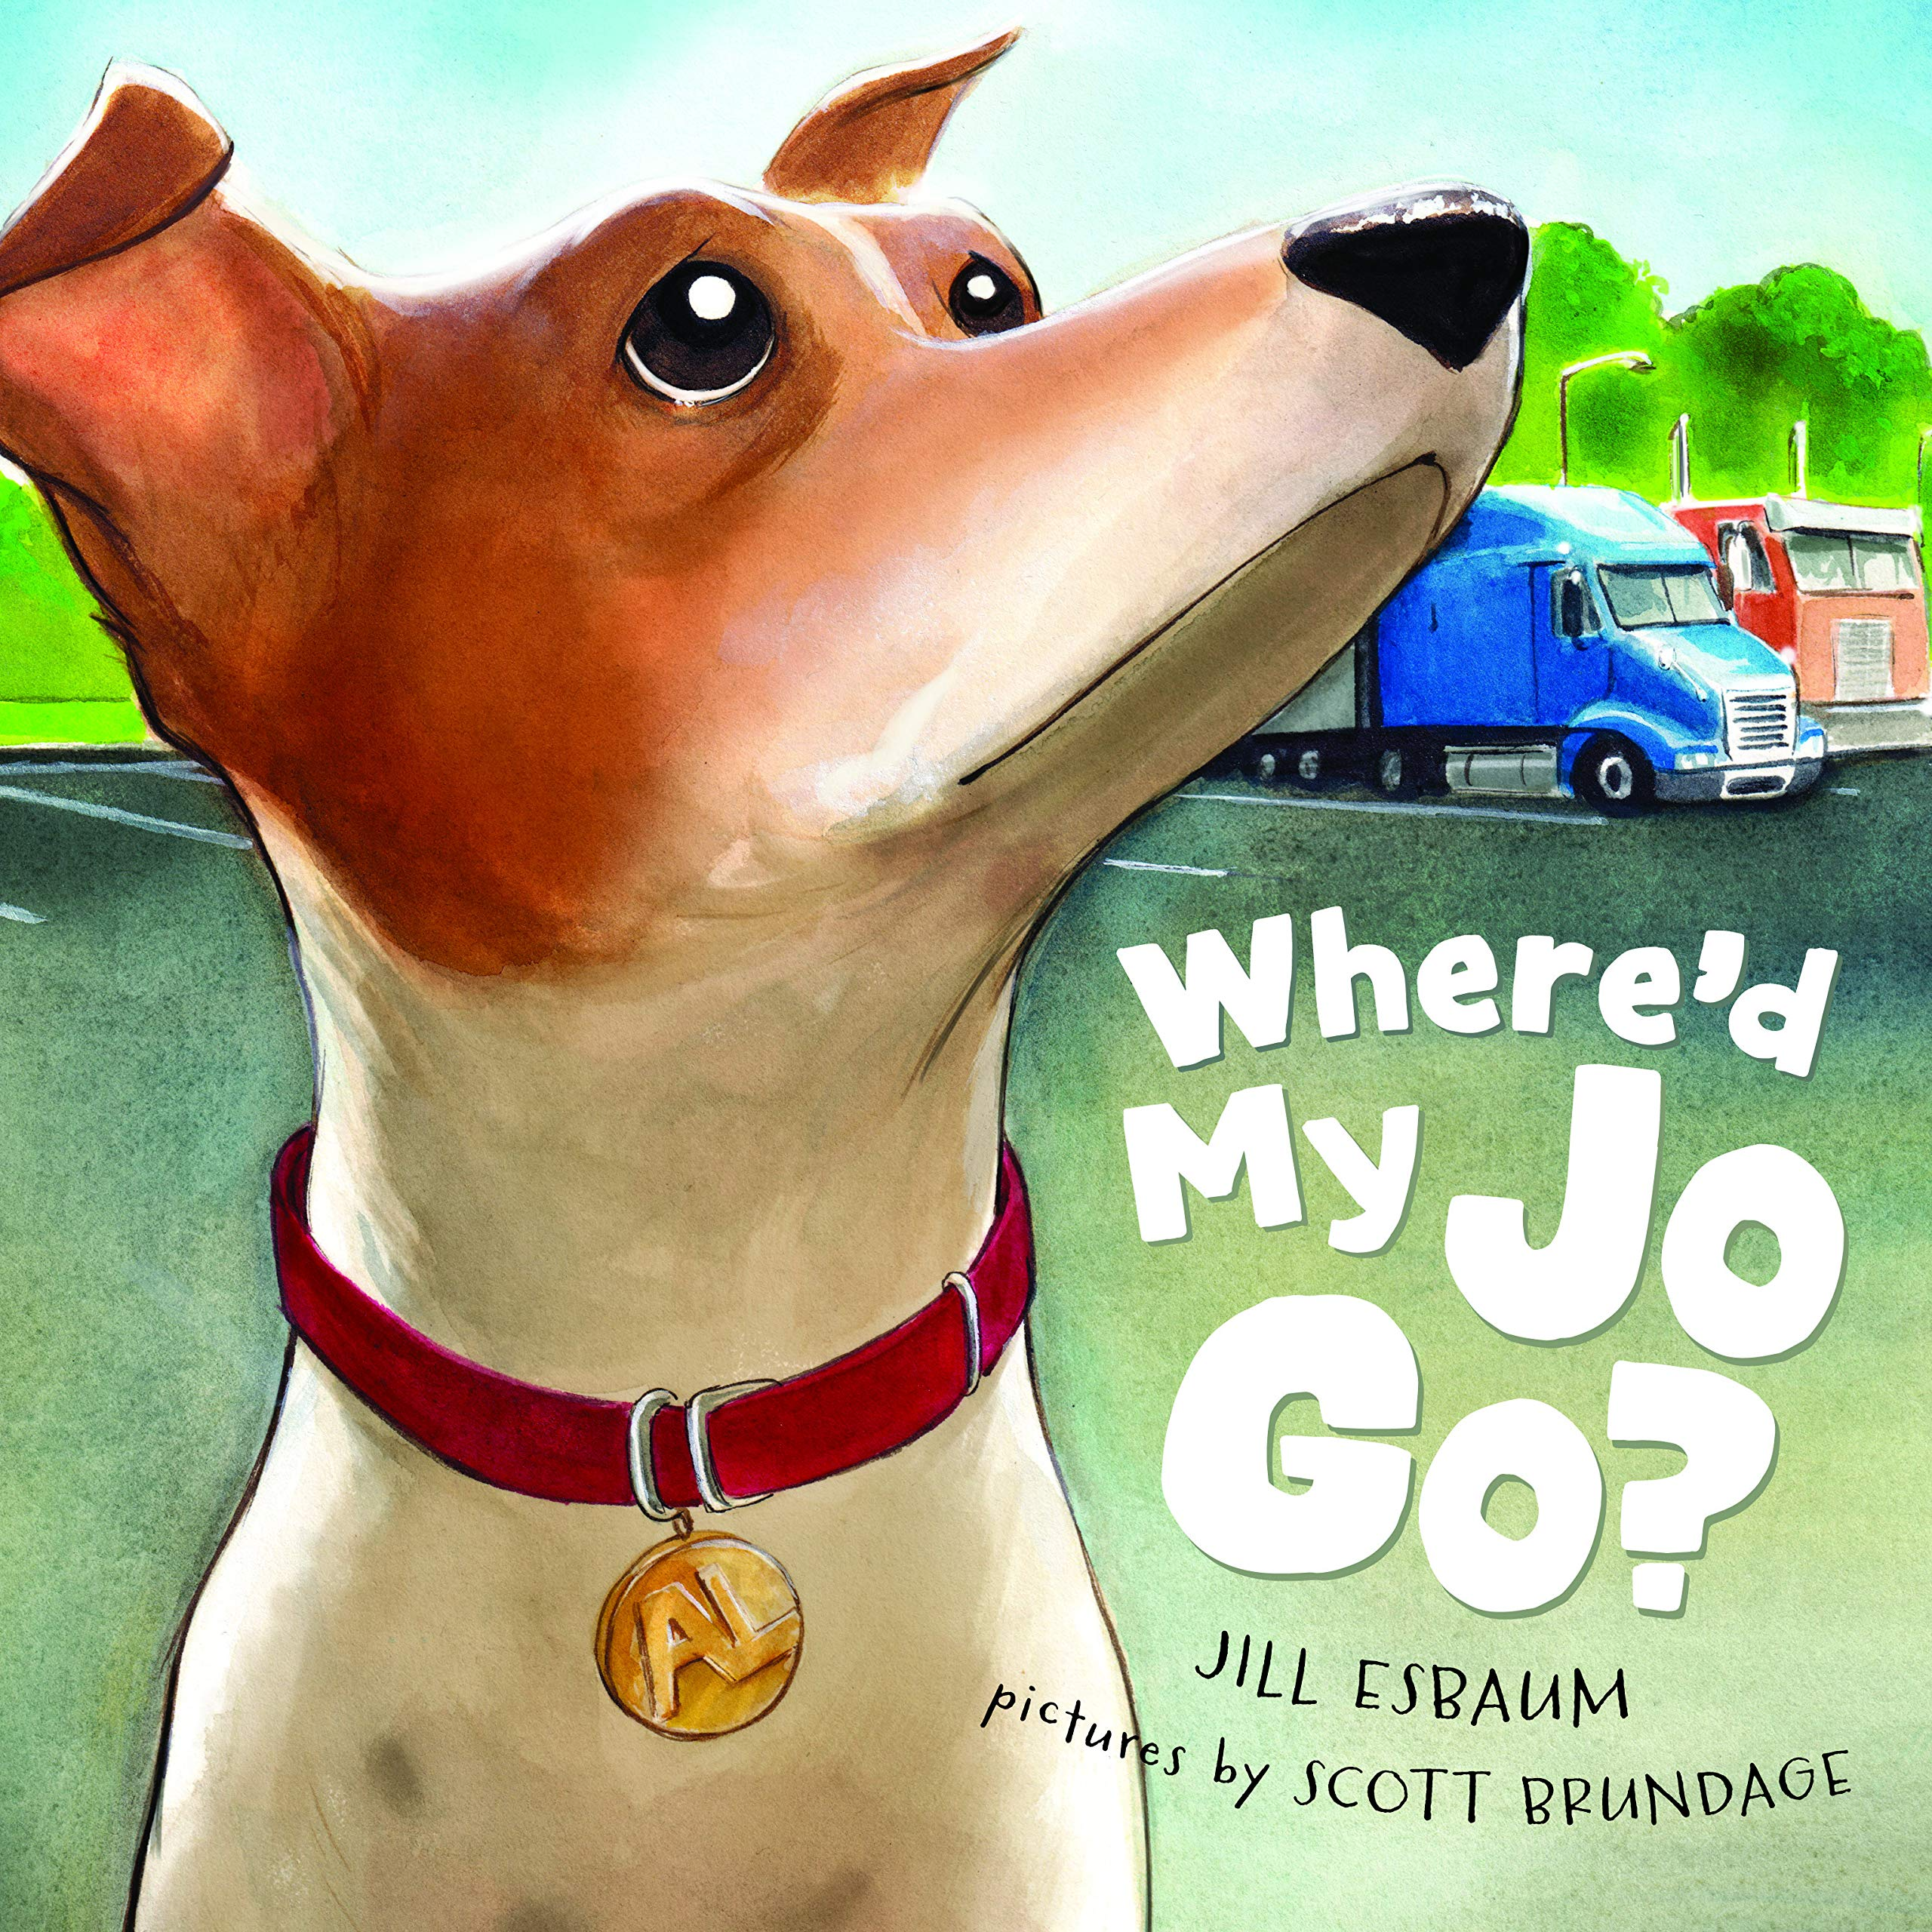 celebrate-picture-books-picture-book-review-where'd-my-jo-go-cover